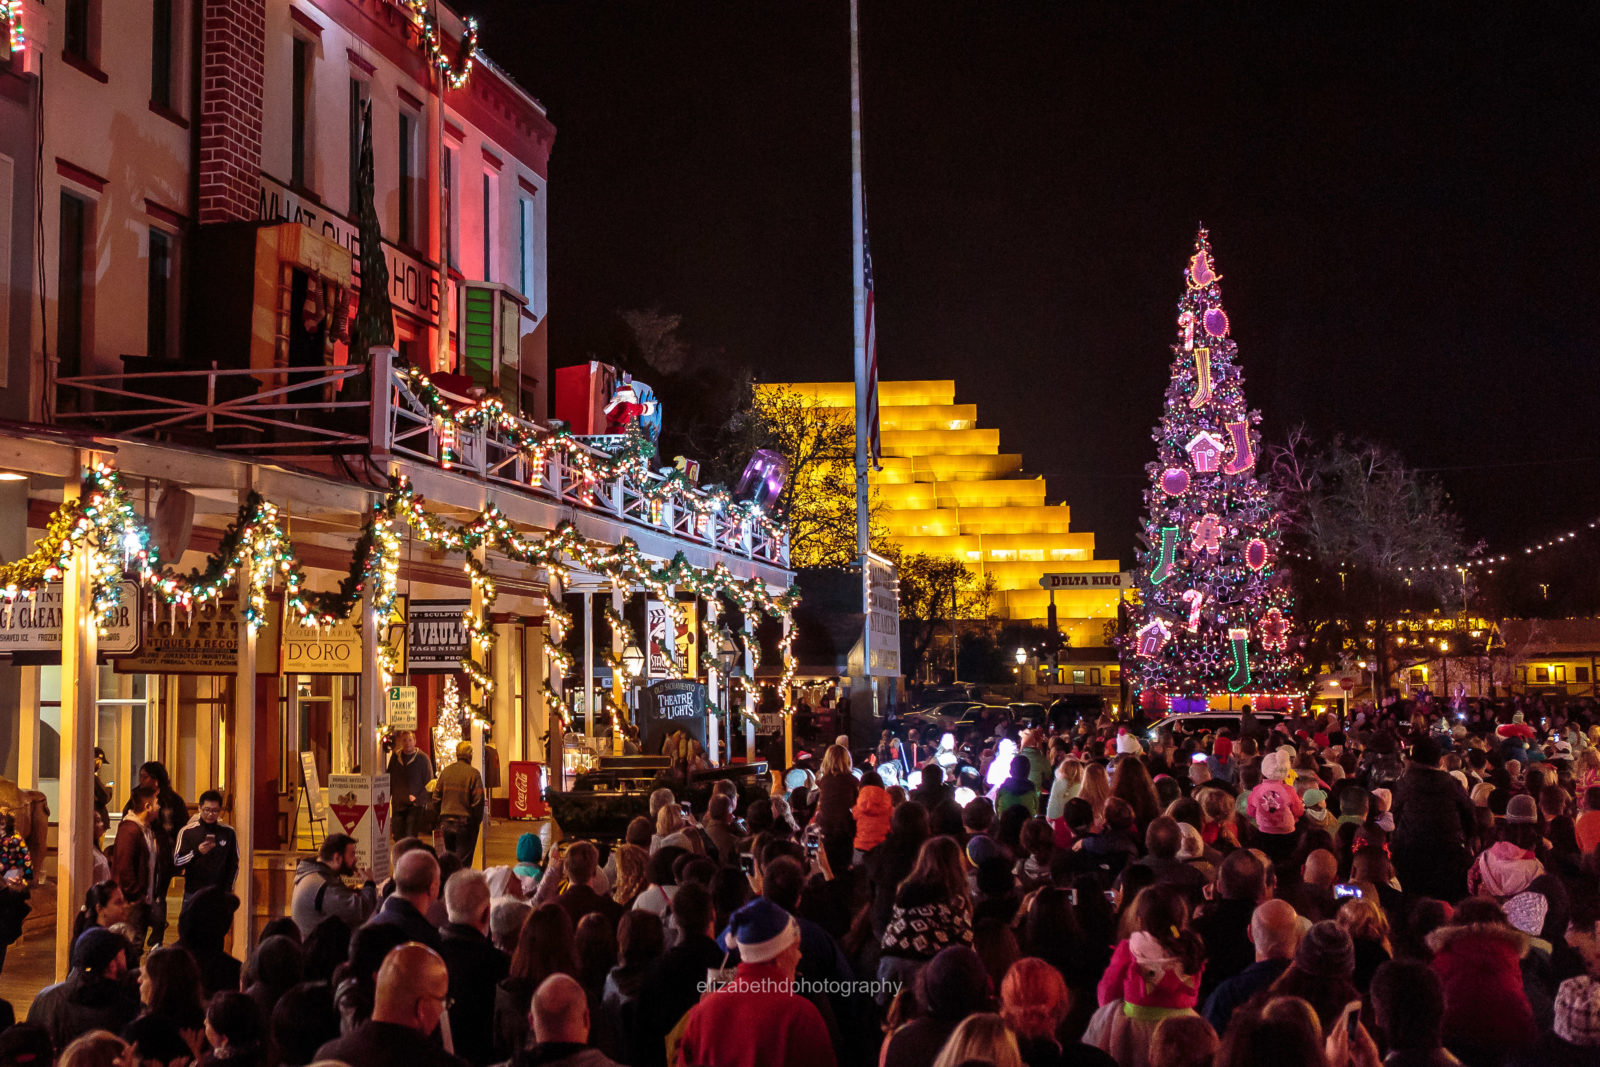 Theatre Of Lights Is A Free Holiday Program Presented By The Old Sacramento  Department Of The Downtown Sacramento Partnership In Cooperation With  Downtown ...